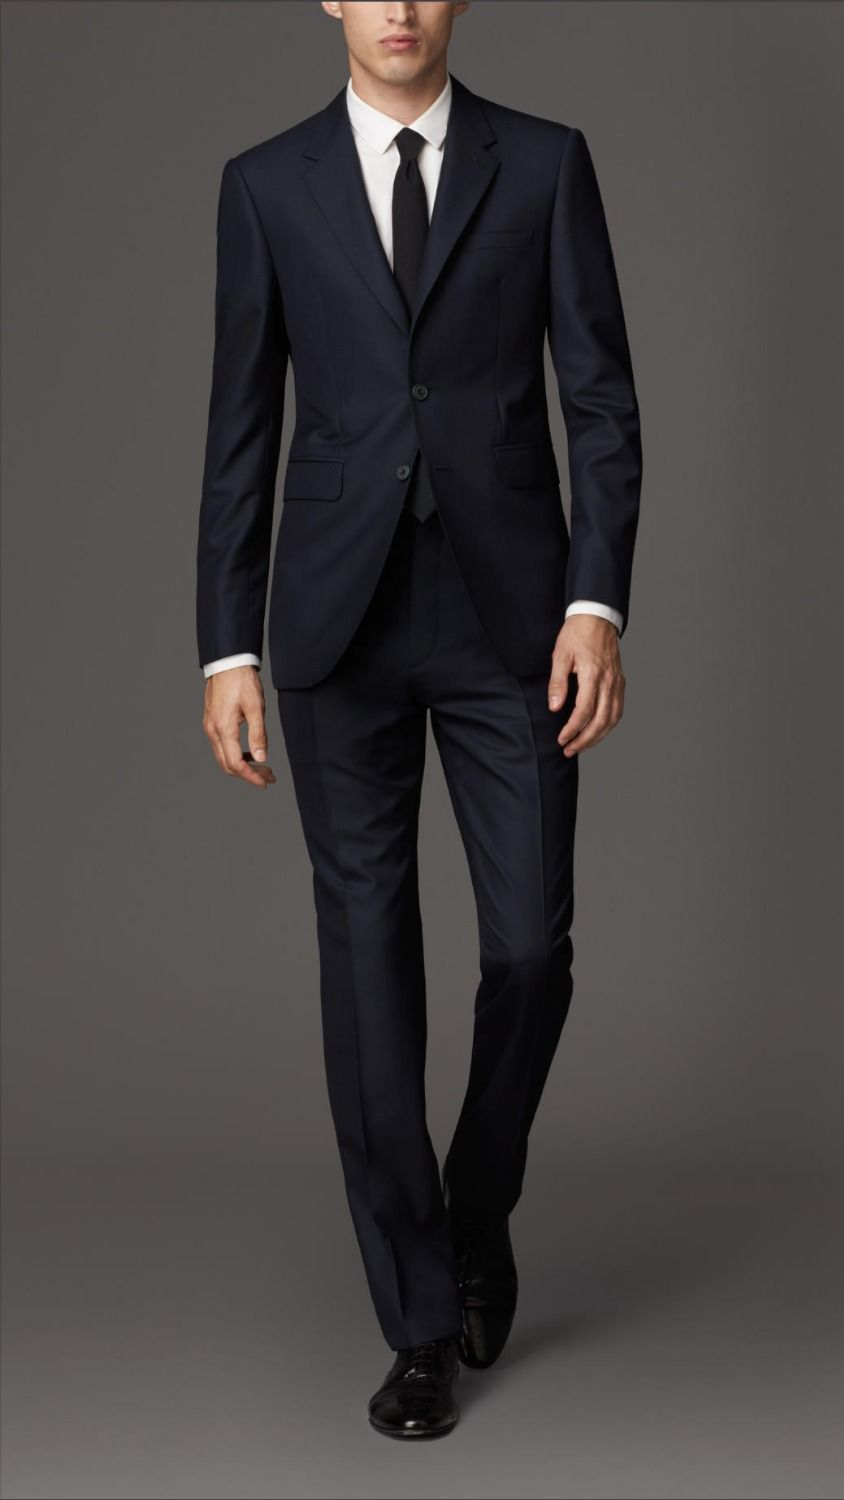 how to dress for a funeral male